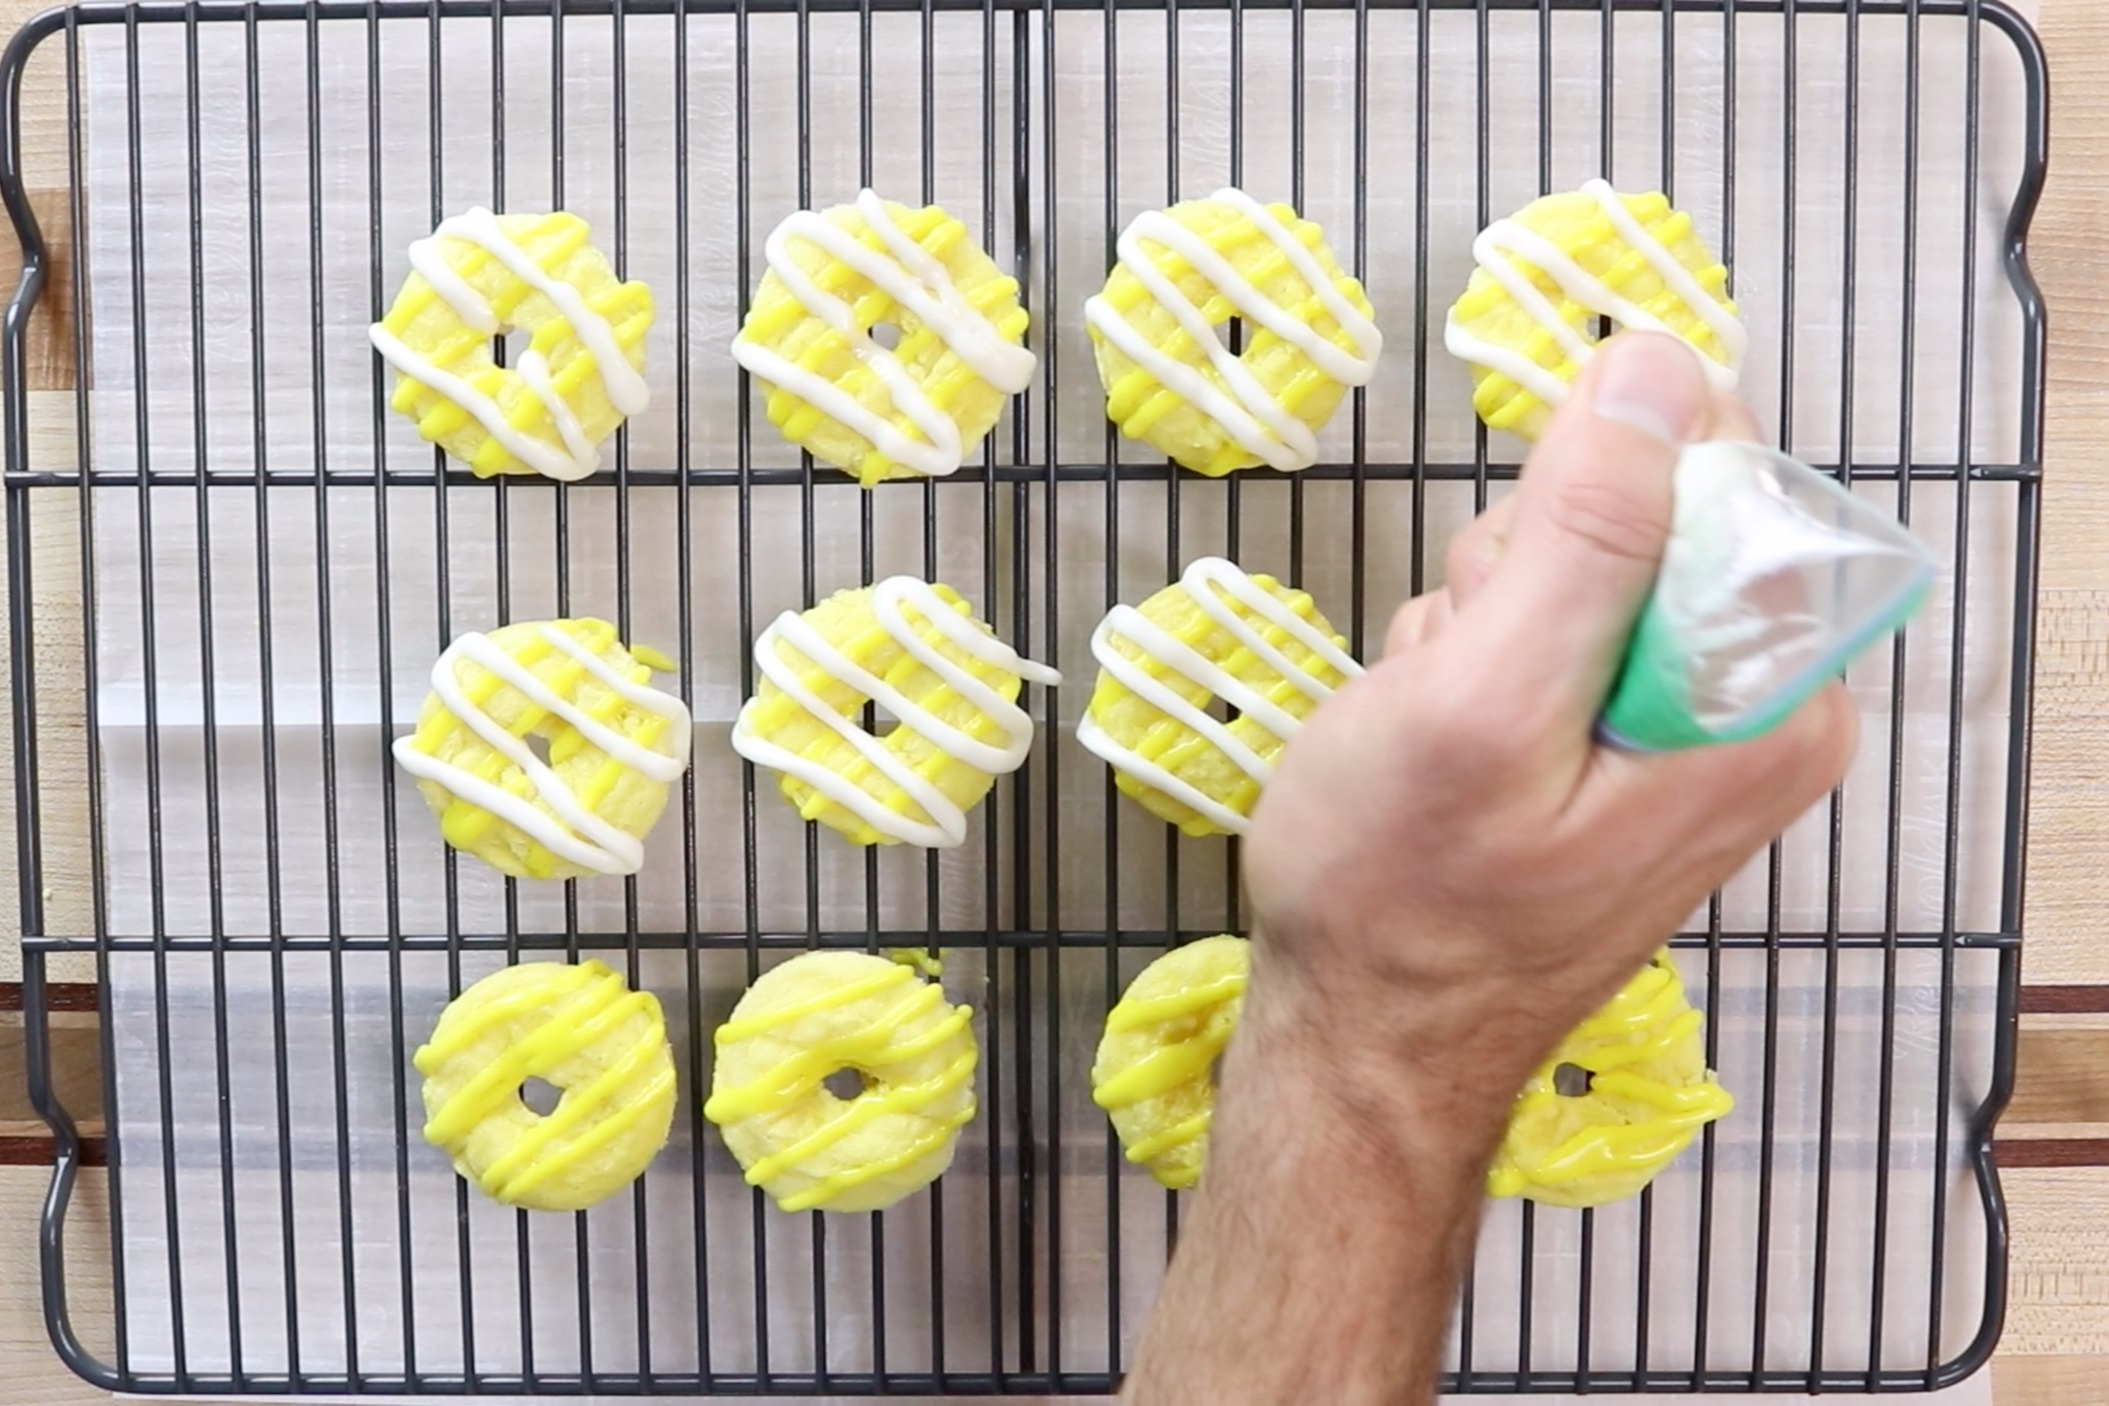 15. Cut a tiny hole in the corner of each bag of glaze. Drizzle each cookie with the white glaze and then with the yellow glaze alternating directions. -